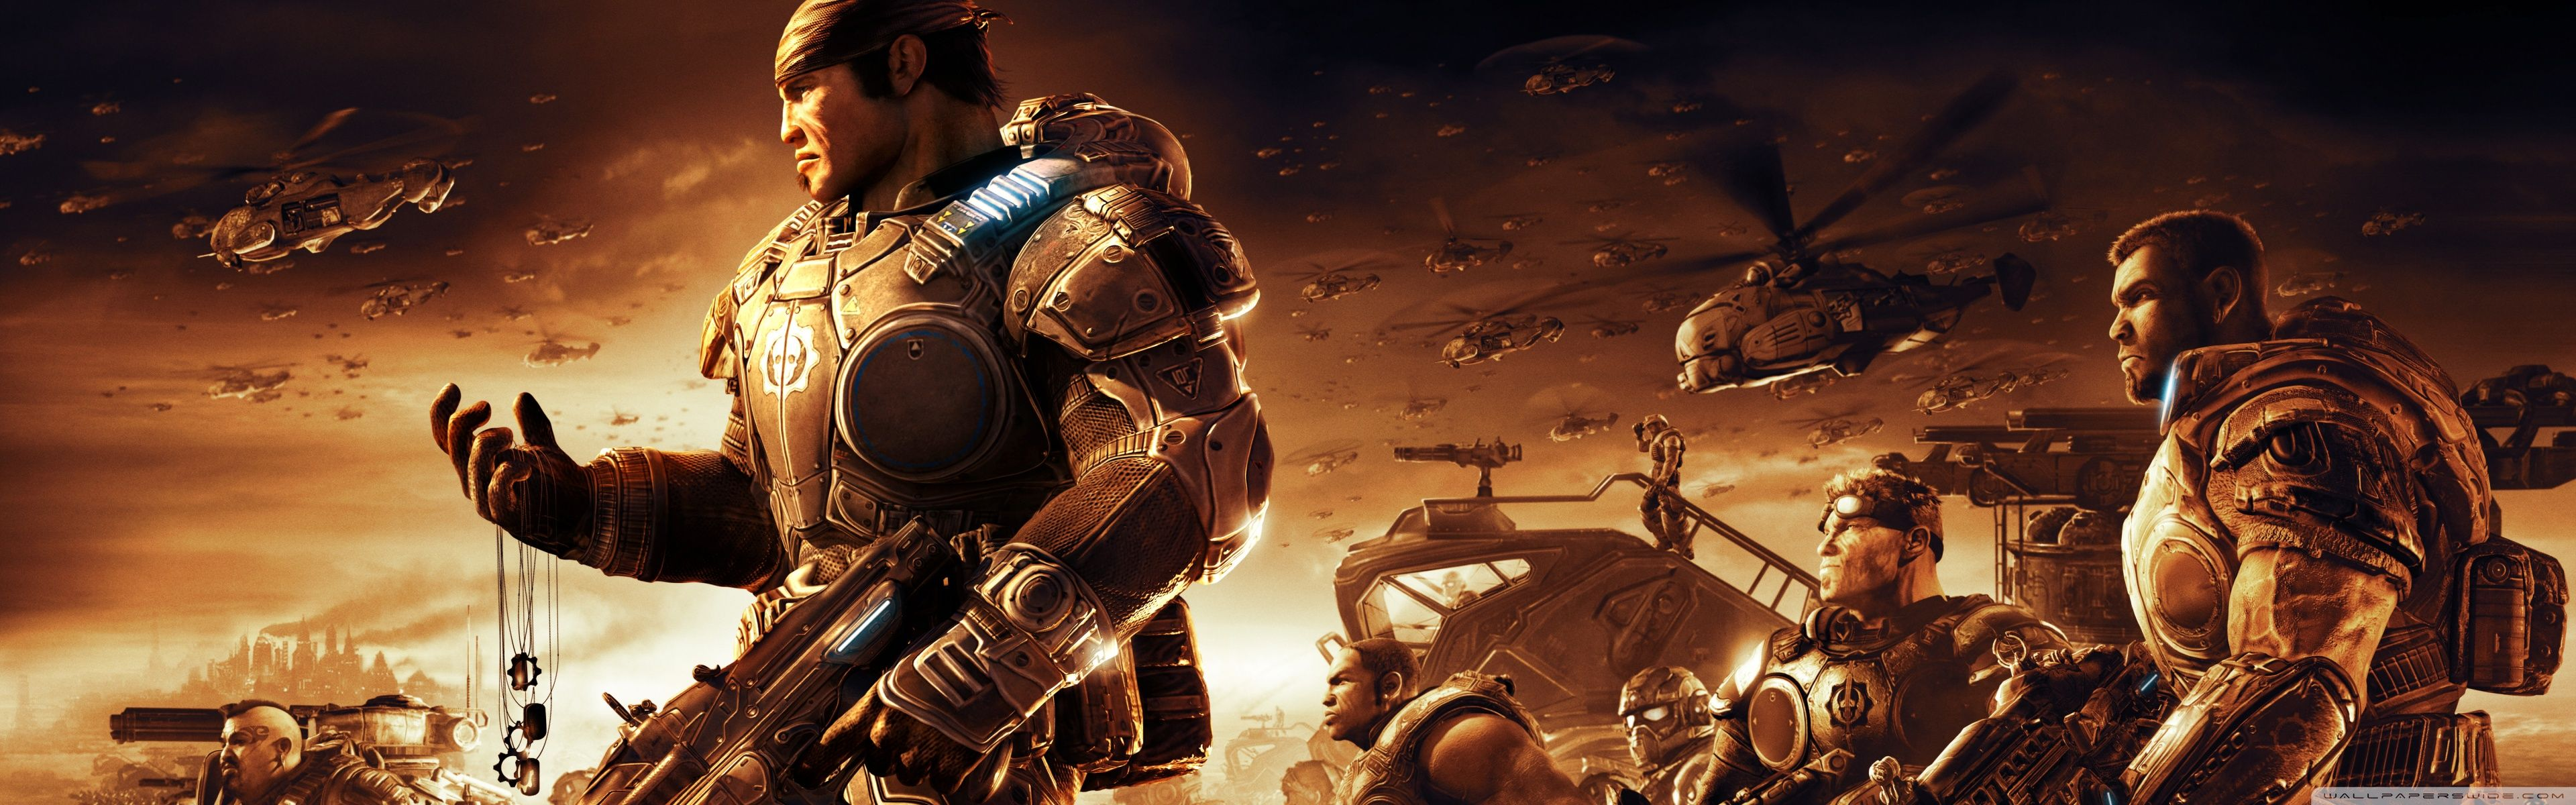 Gears Of War Dual Screen Wallpapers Top Free Gears Of War Dual Screen Backgrounds Wallpaperaccess